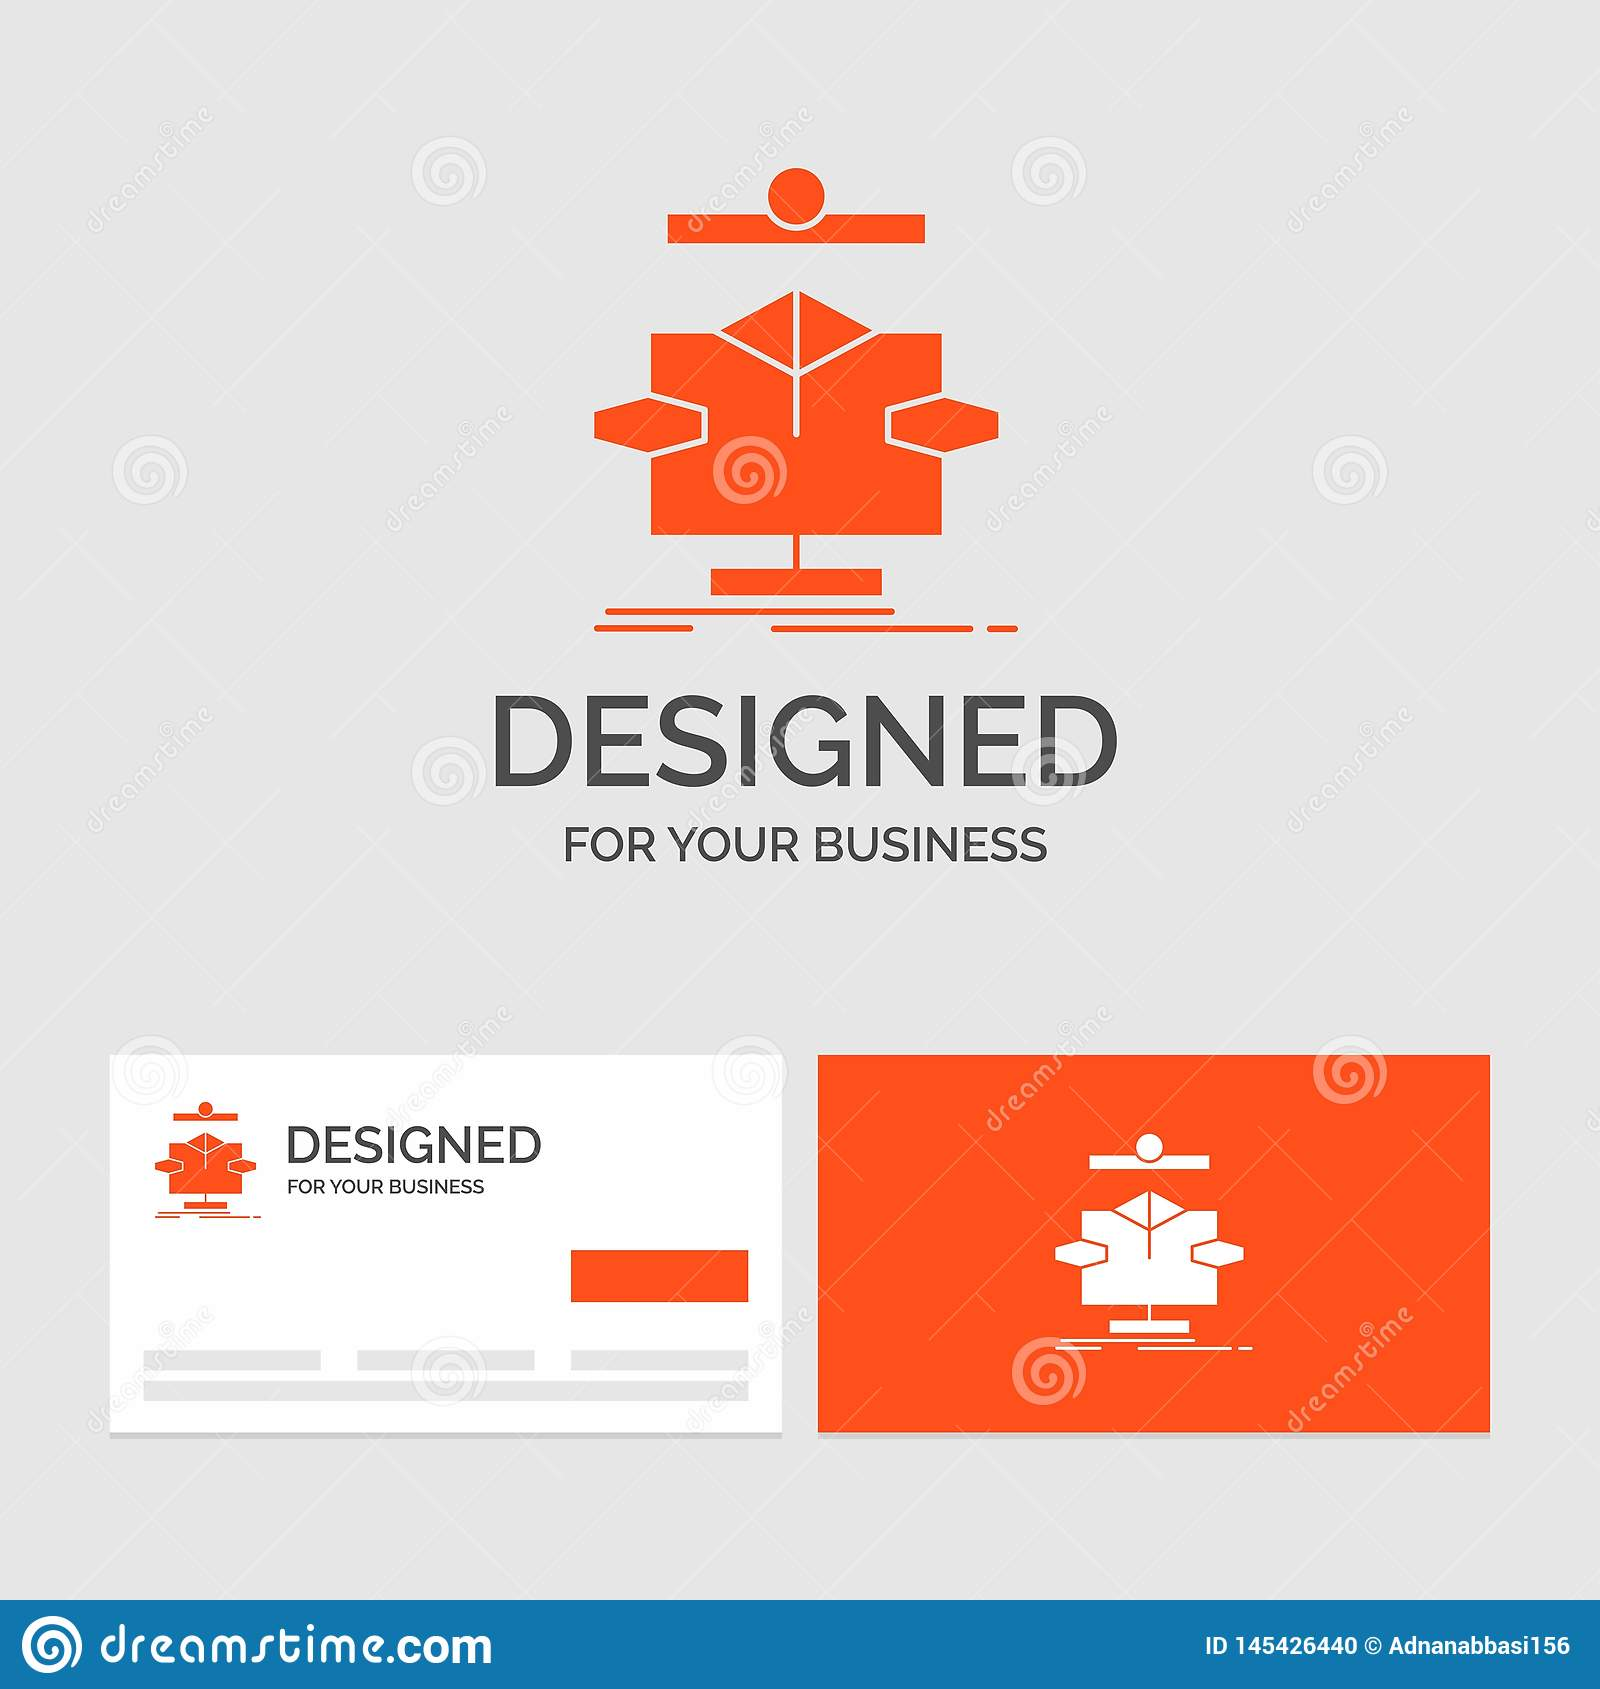 Business logo template for Algorithm, chart, data, diagram, flow. Orange Visiting Cards with Brand logo template